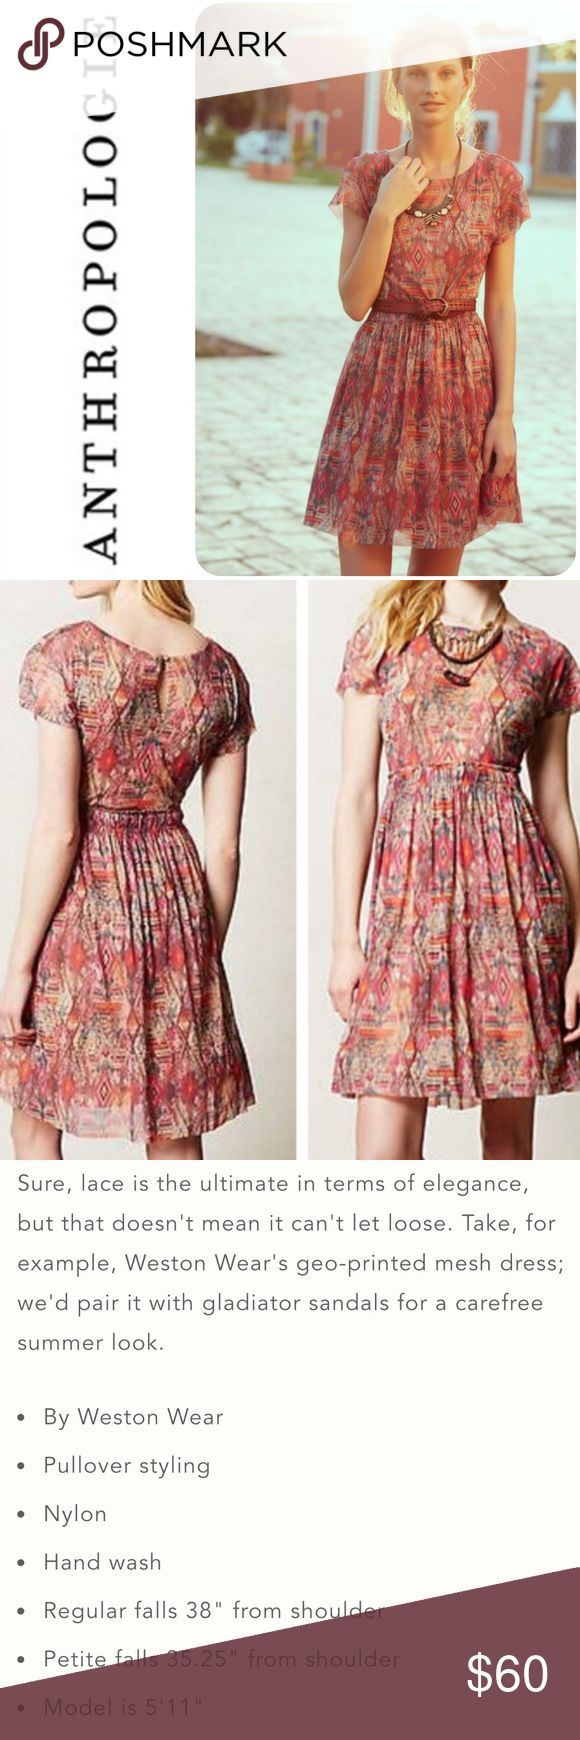 🌺New! Weston Wear Simi Mesh Dress Like new condition. More pics and details to follow Anthropologie Dresses